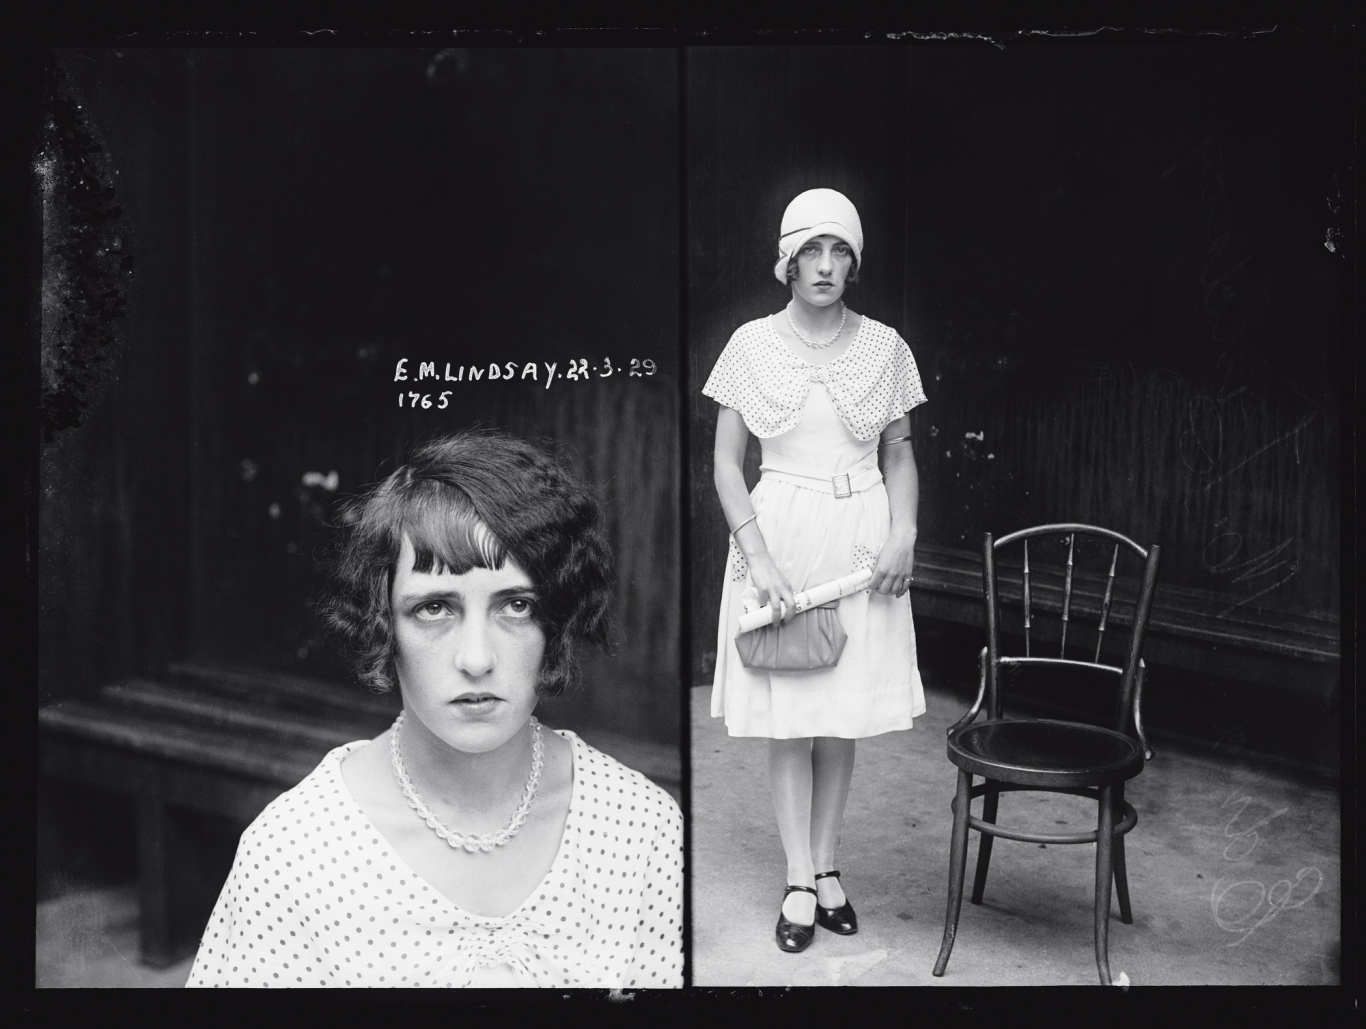 Dual mugshot in black and white; woman seated, left, standing with hat on, right.